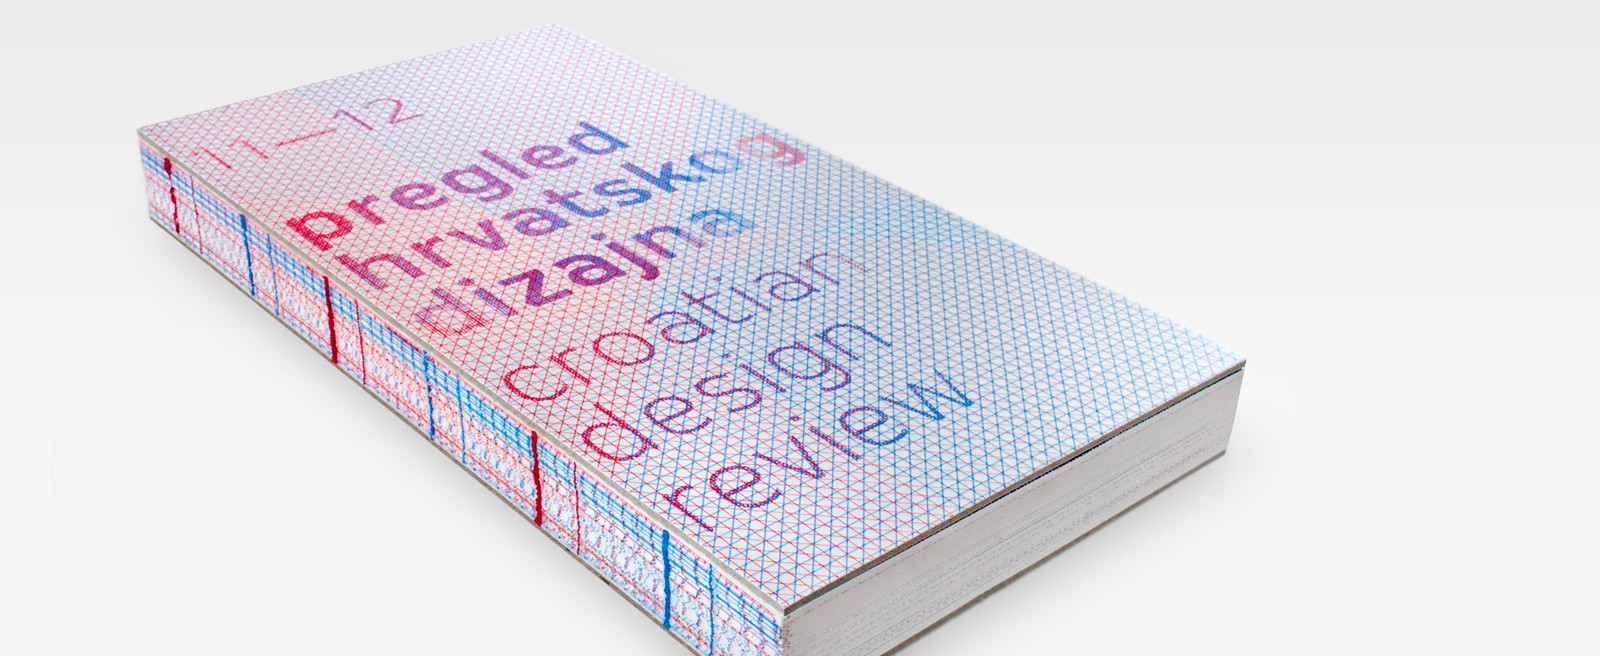 The catalogue of Croatian design 11/12 under our direction